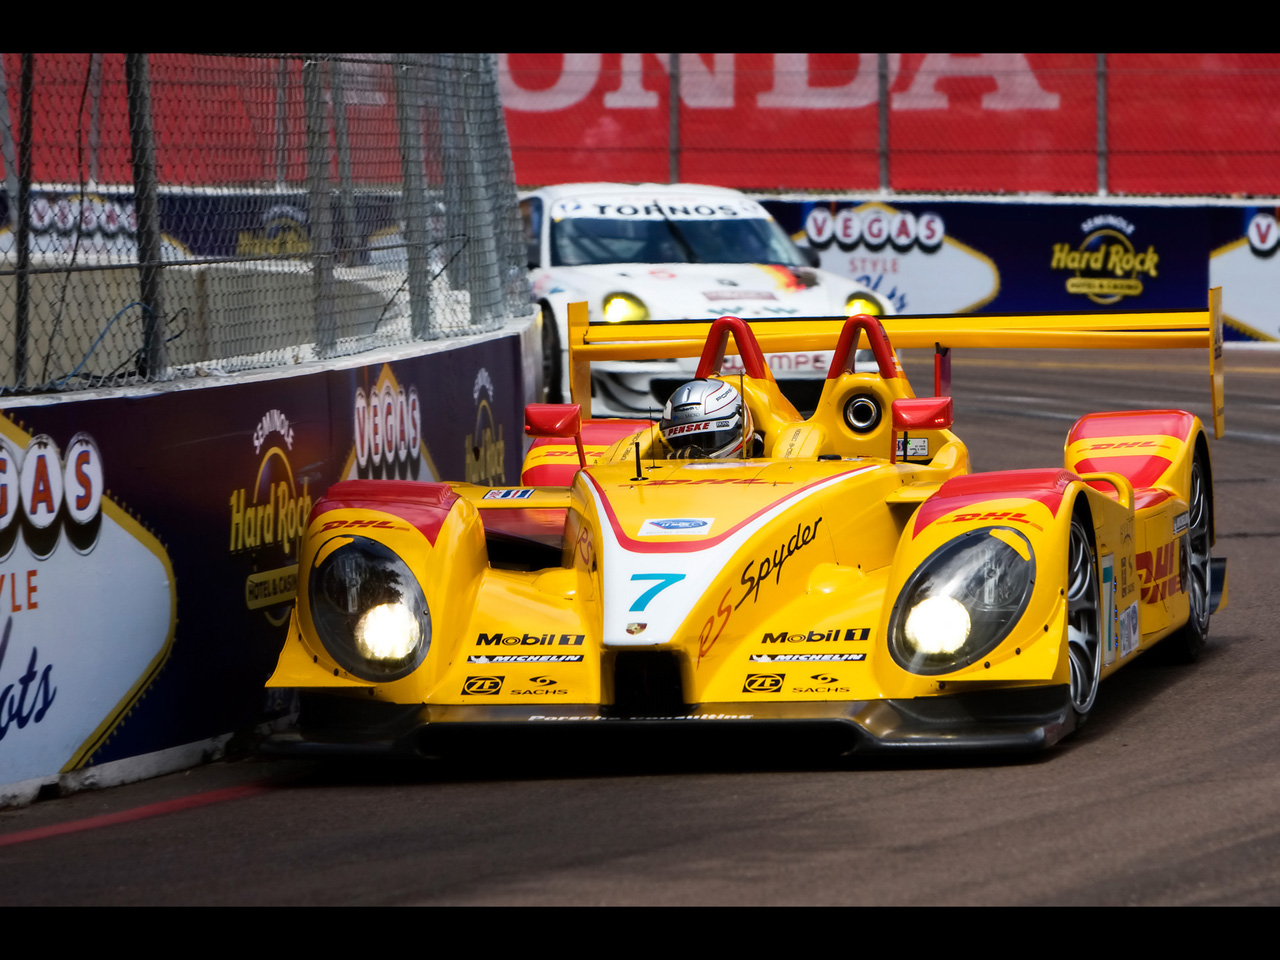 2008-Porsche-RS-Spyder-Long-Beach-Penske-Racing-Wallpaper